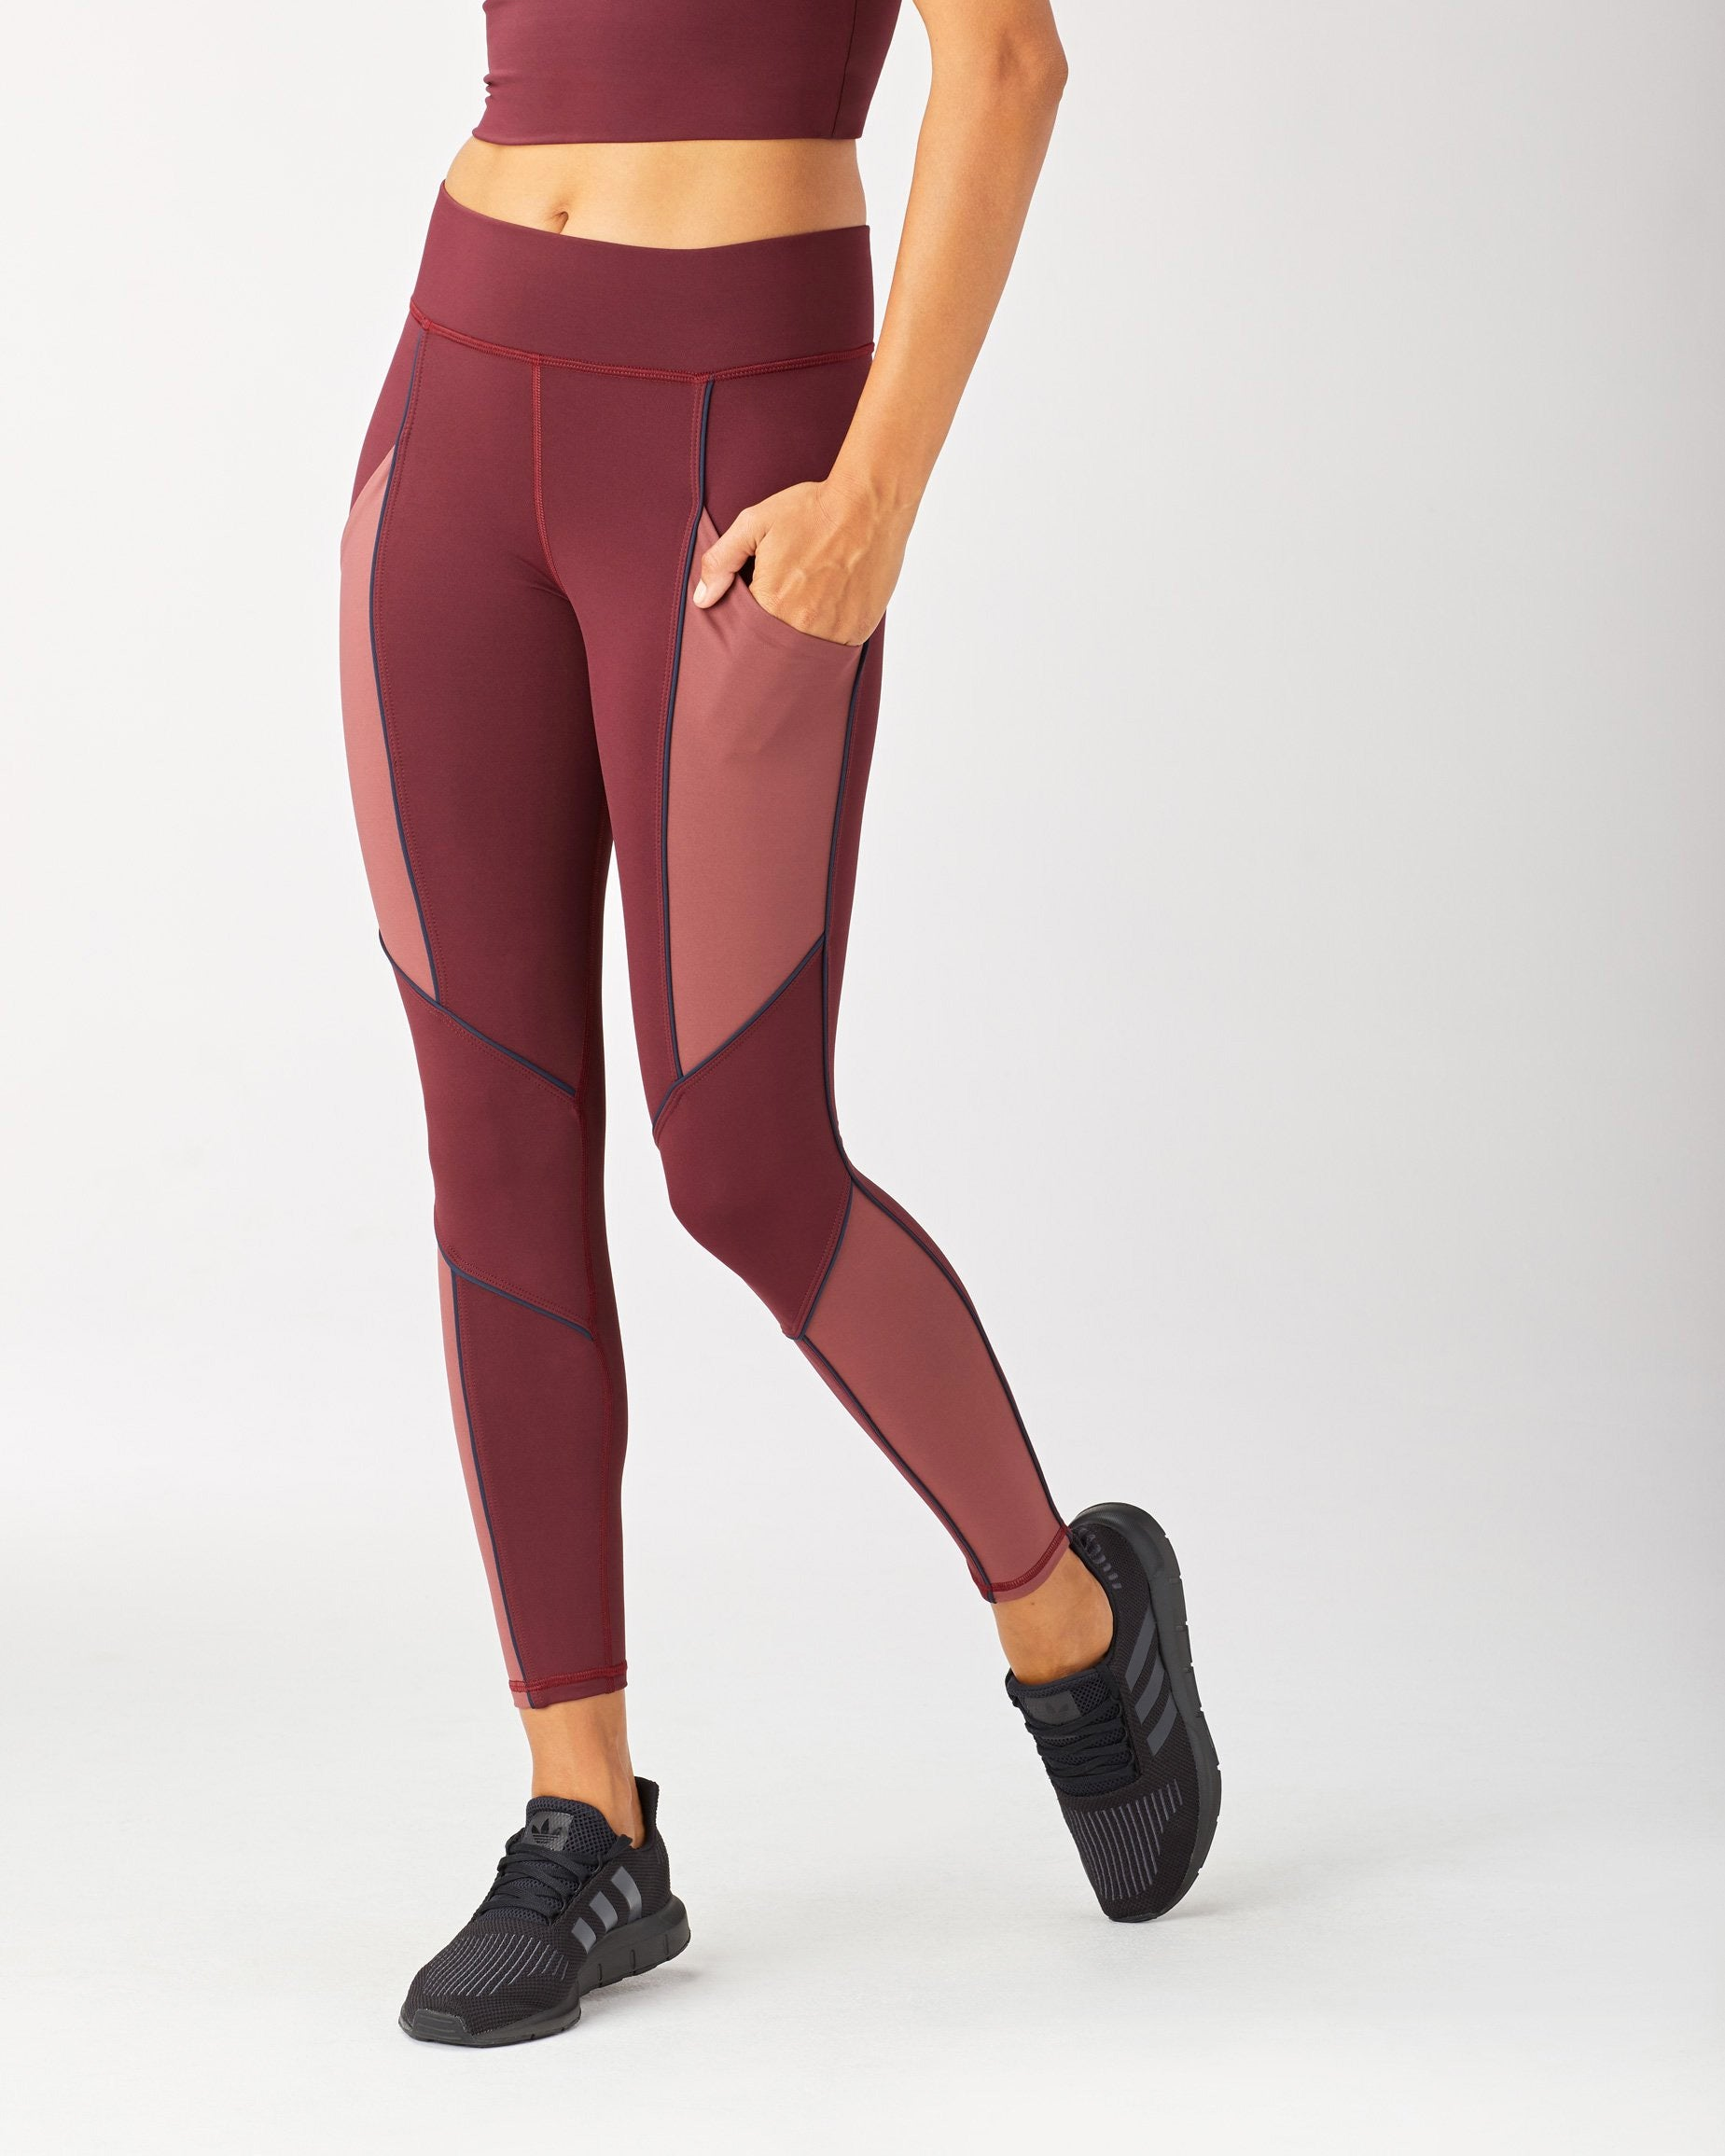 baltic-pocket-legging-wine-spice